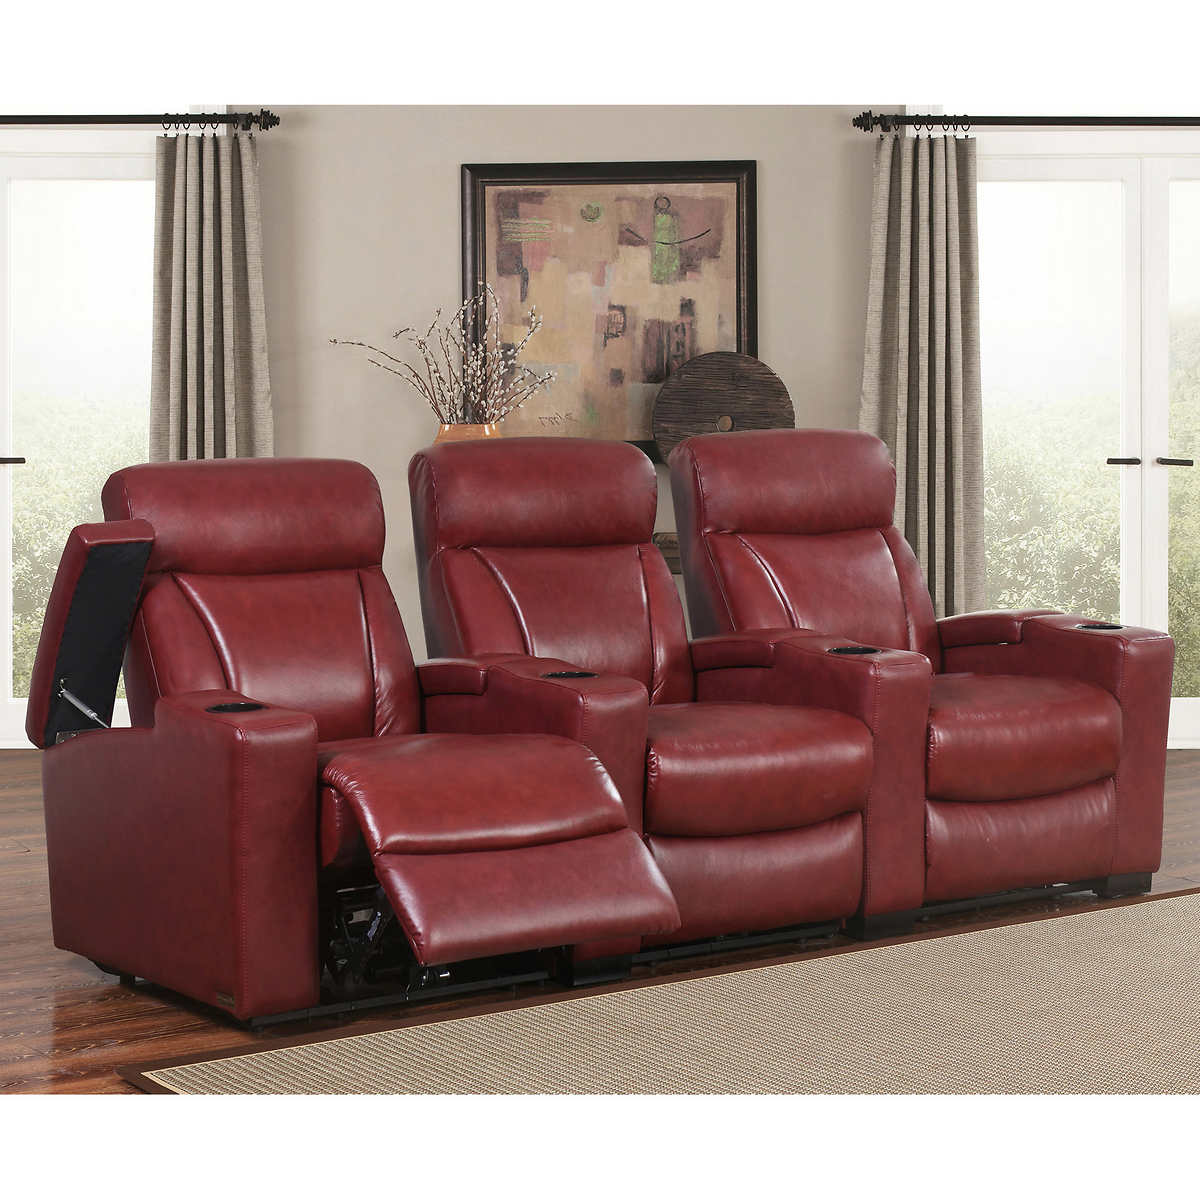 Romano 3 Piece Top Grain Leather Power Media Recliners Living Room Set